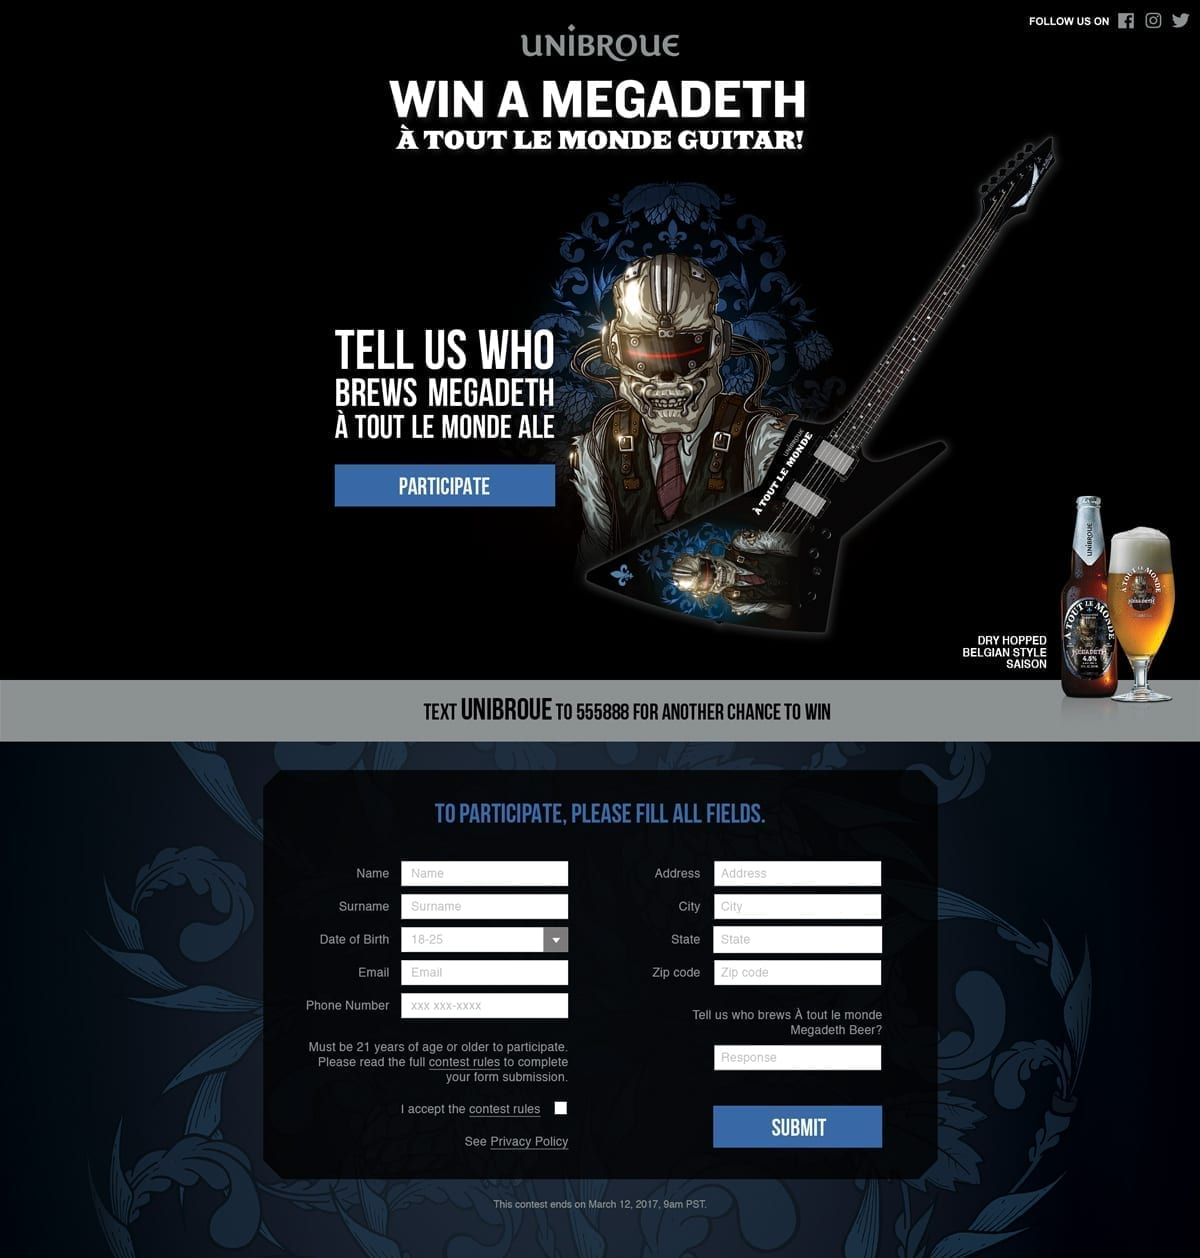 Landing page with images of Megadeth band mascot Vic Rattlehead, a bottle and glass of A Tout le Monde beer, and an electric guitar. The copy invites people to text or fill out a form to win the featured guitar.